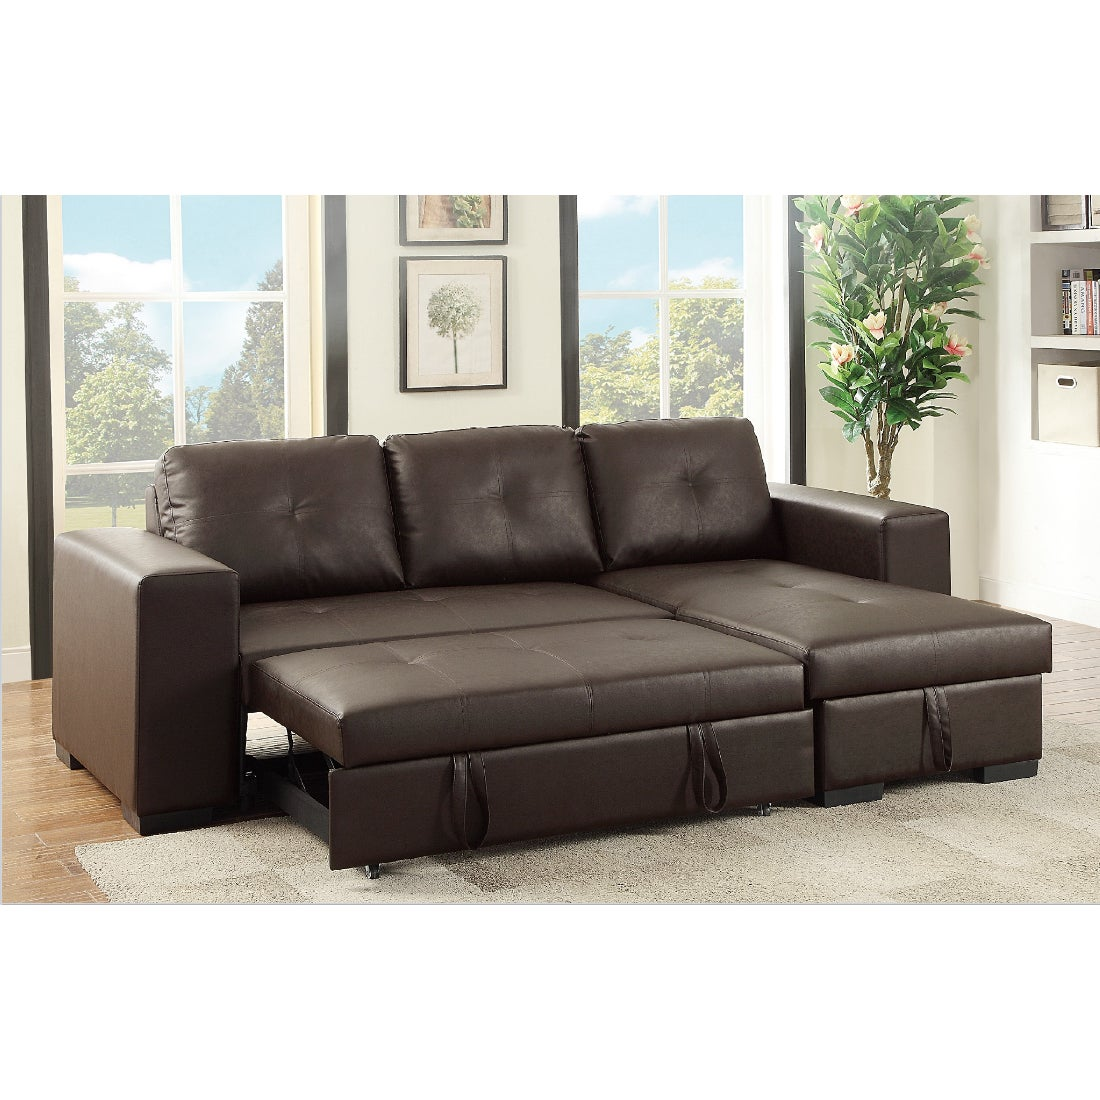 Nadim Convertible Pullout Bed Sectional Sofa (Light Coffe...